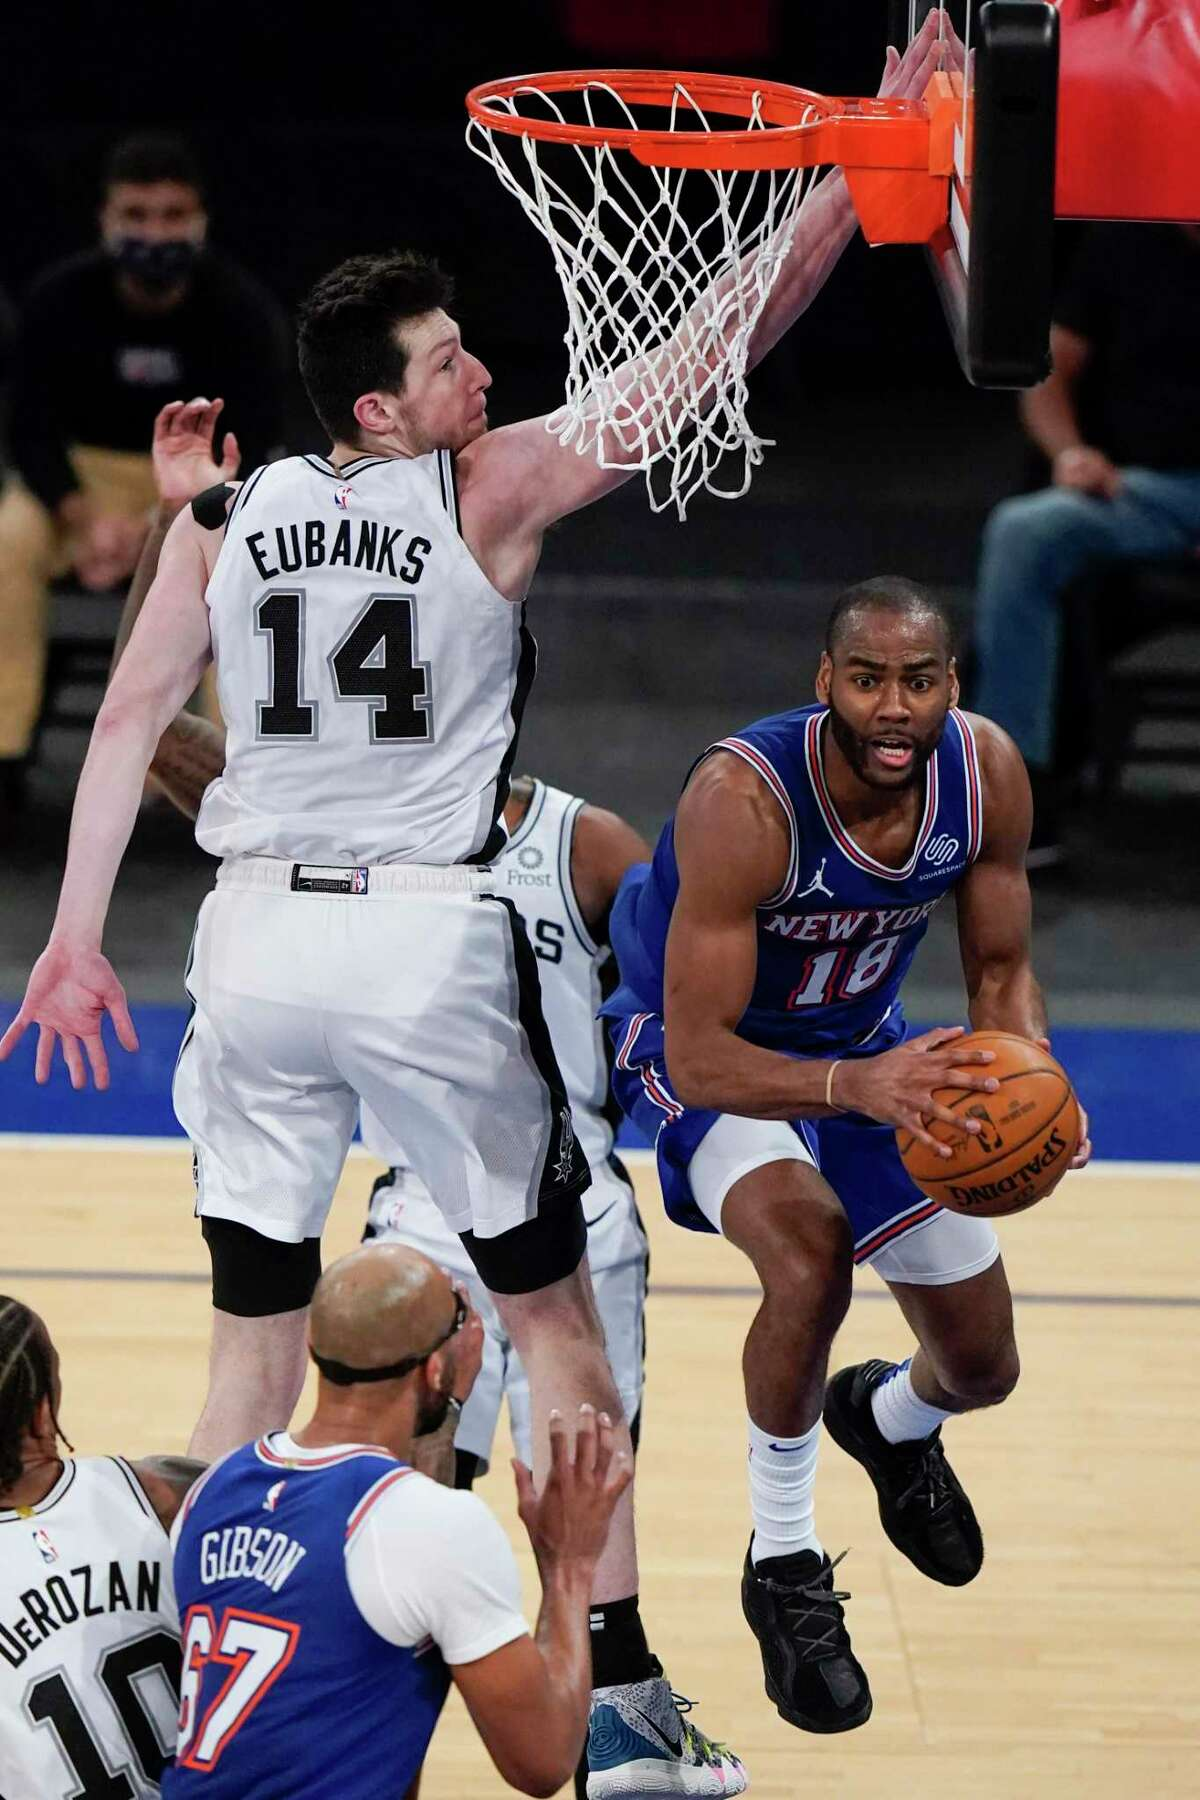 New York Knicks' Alec Burks (18) passes away from San Antonio Spurs' Drew Eubanks (14) during the second half of an NBA basketball game Thursday, May 13, 2021, in New York. (AP Photo/Frank Franklin II, Pool)